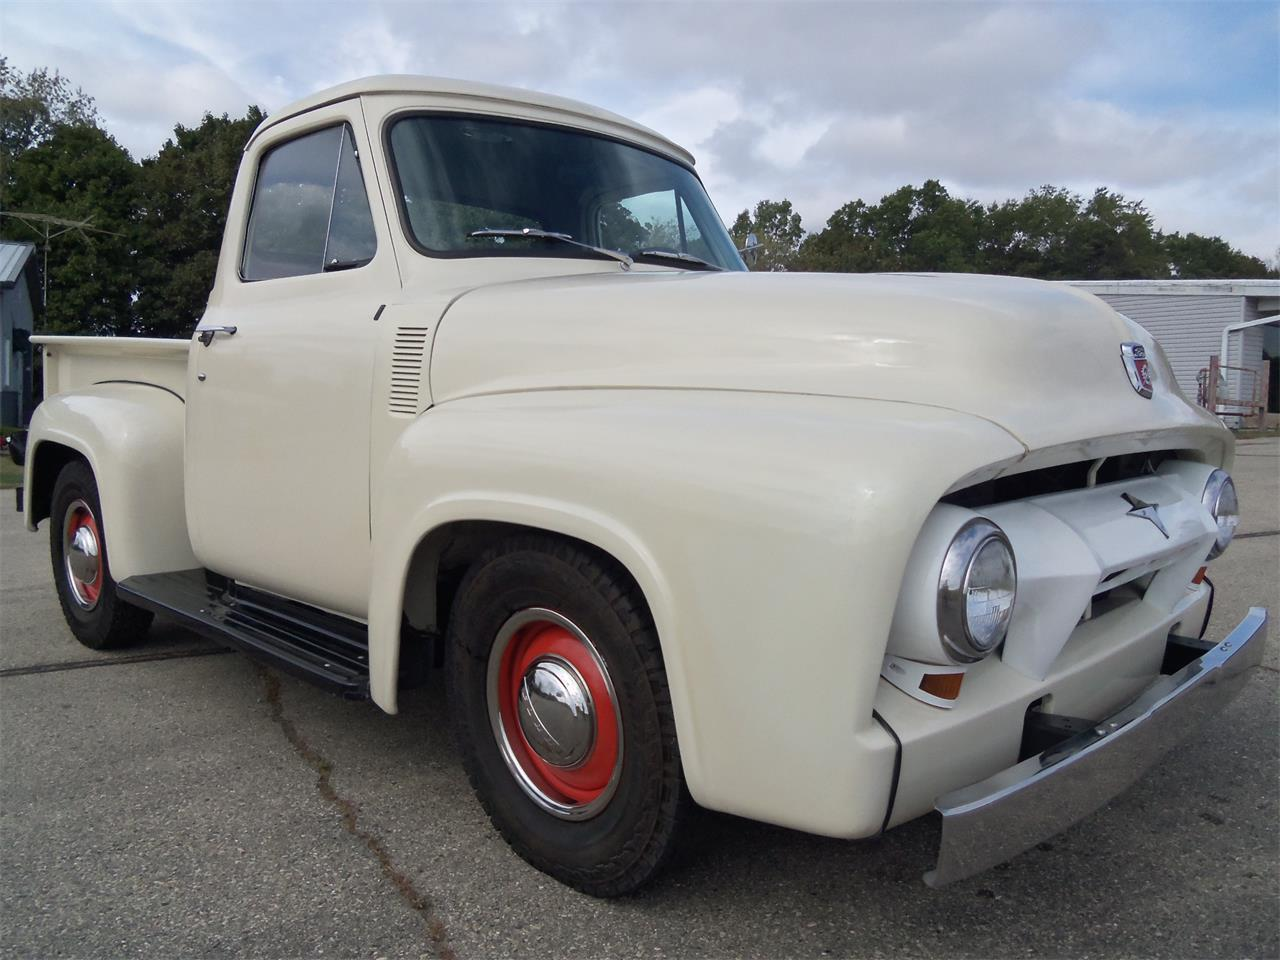 Large picture of classic 54 ford f100 located in jefferson wisconsin 24995 00 m1dv